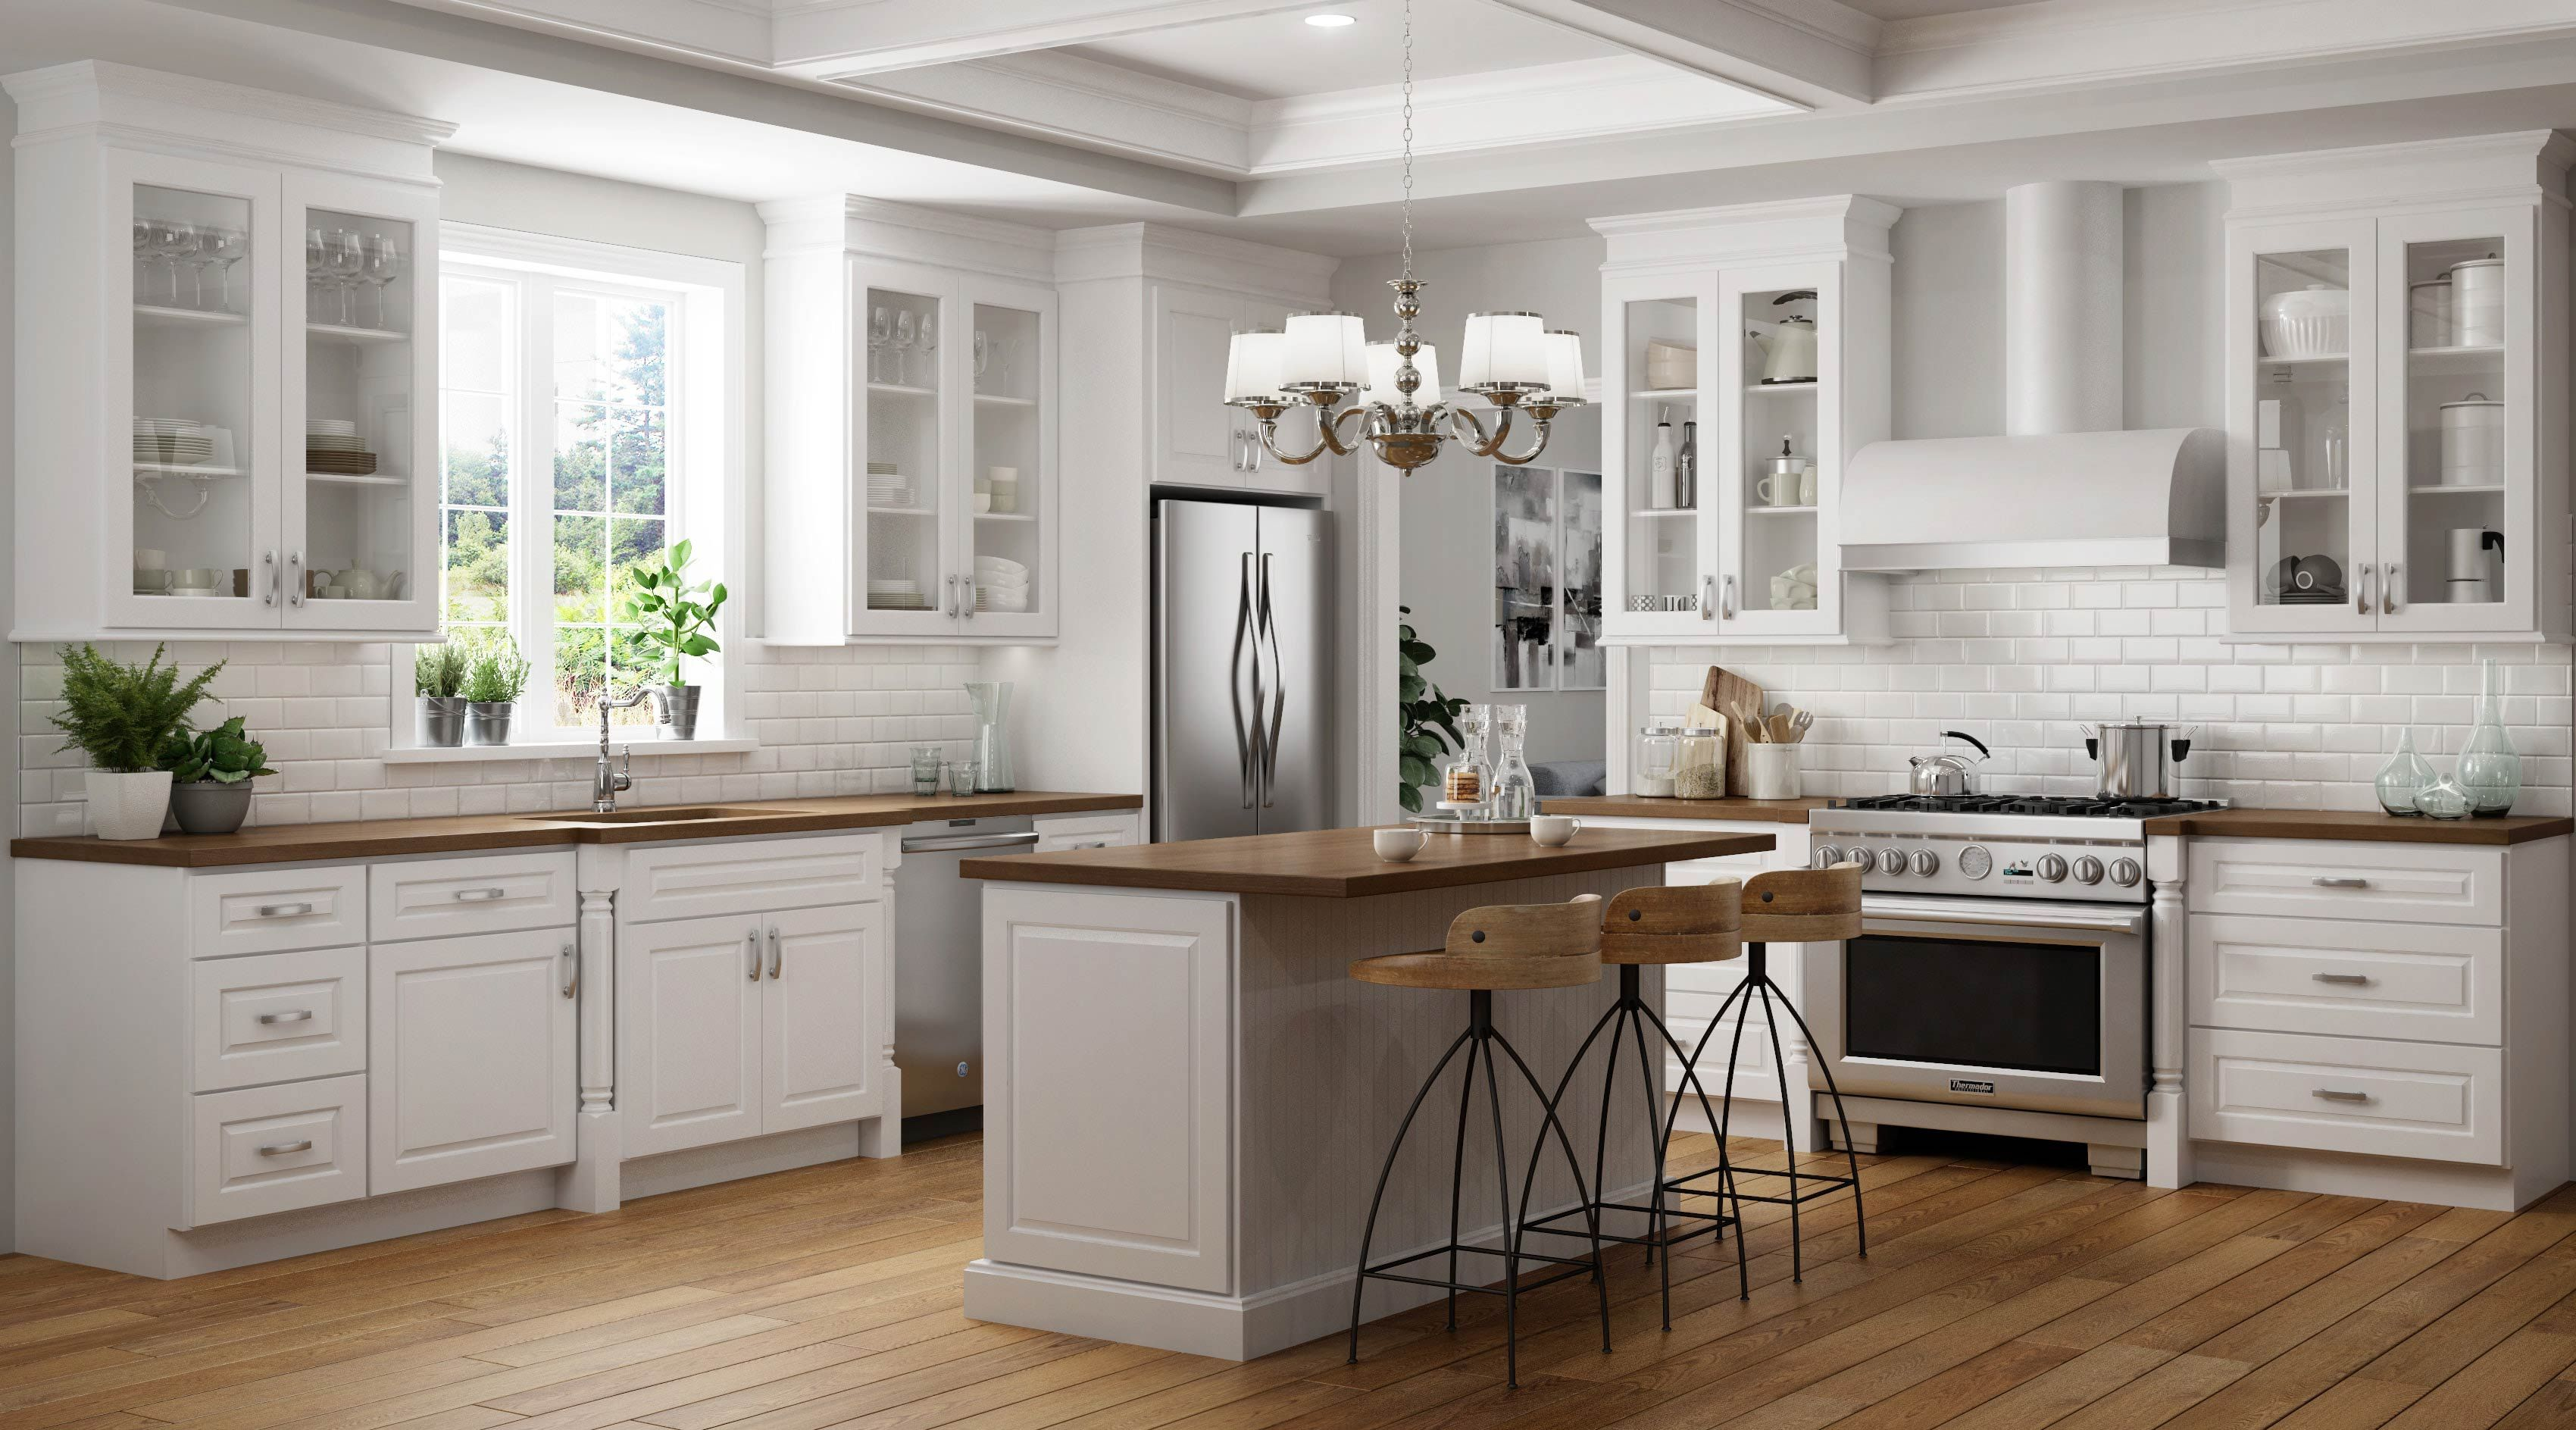 Quality Rta Cabinets At Affordable Prices Luxury Kitchen Design Kitchen Remodel Kitchen Interior